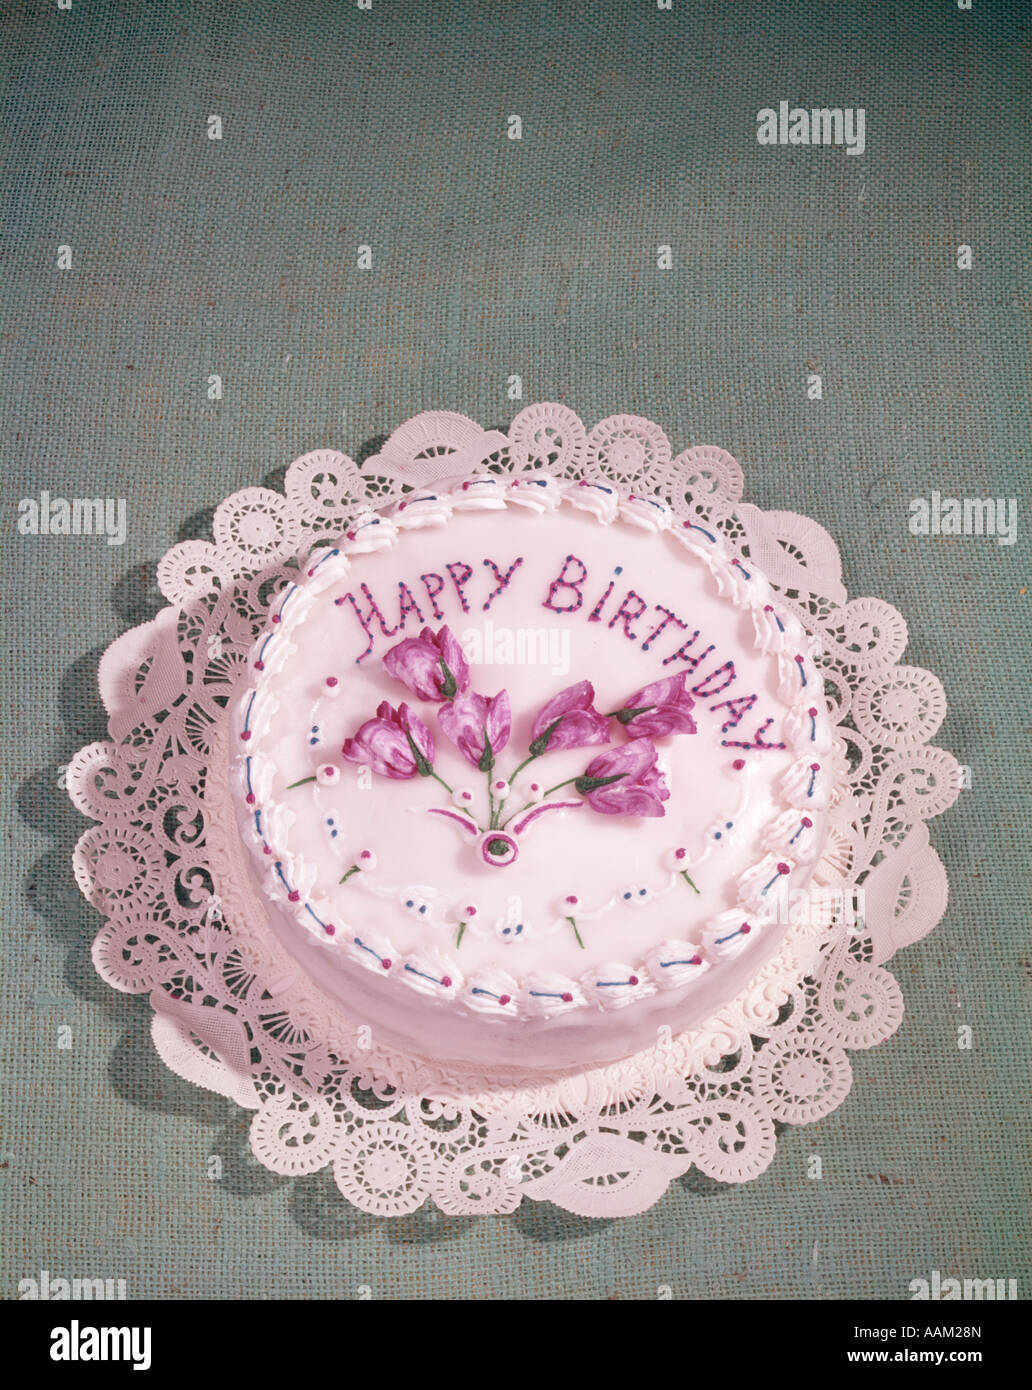 HAPPY BIRTHDAY CAKE WITH WHITE FROSTING AND PINK LETTERS AND FLOWERS - Stock Image